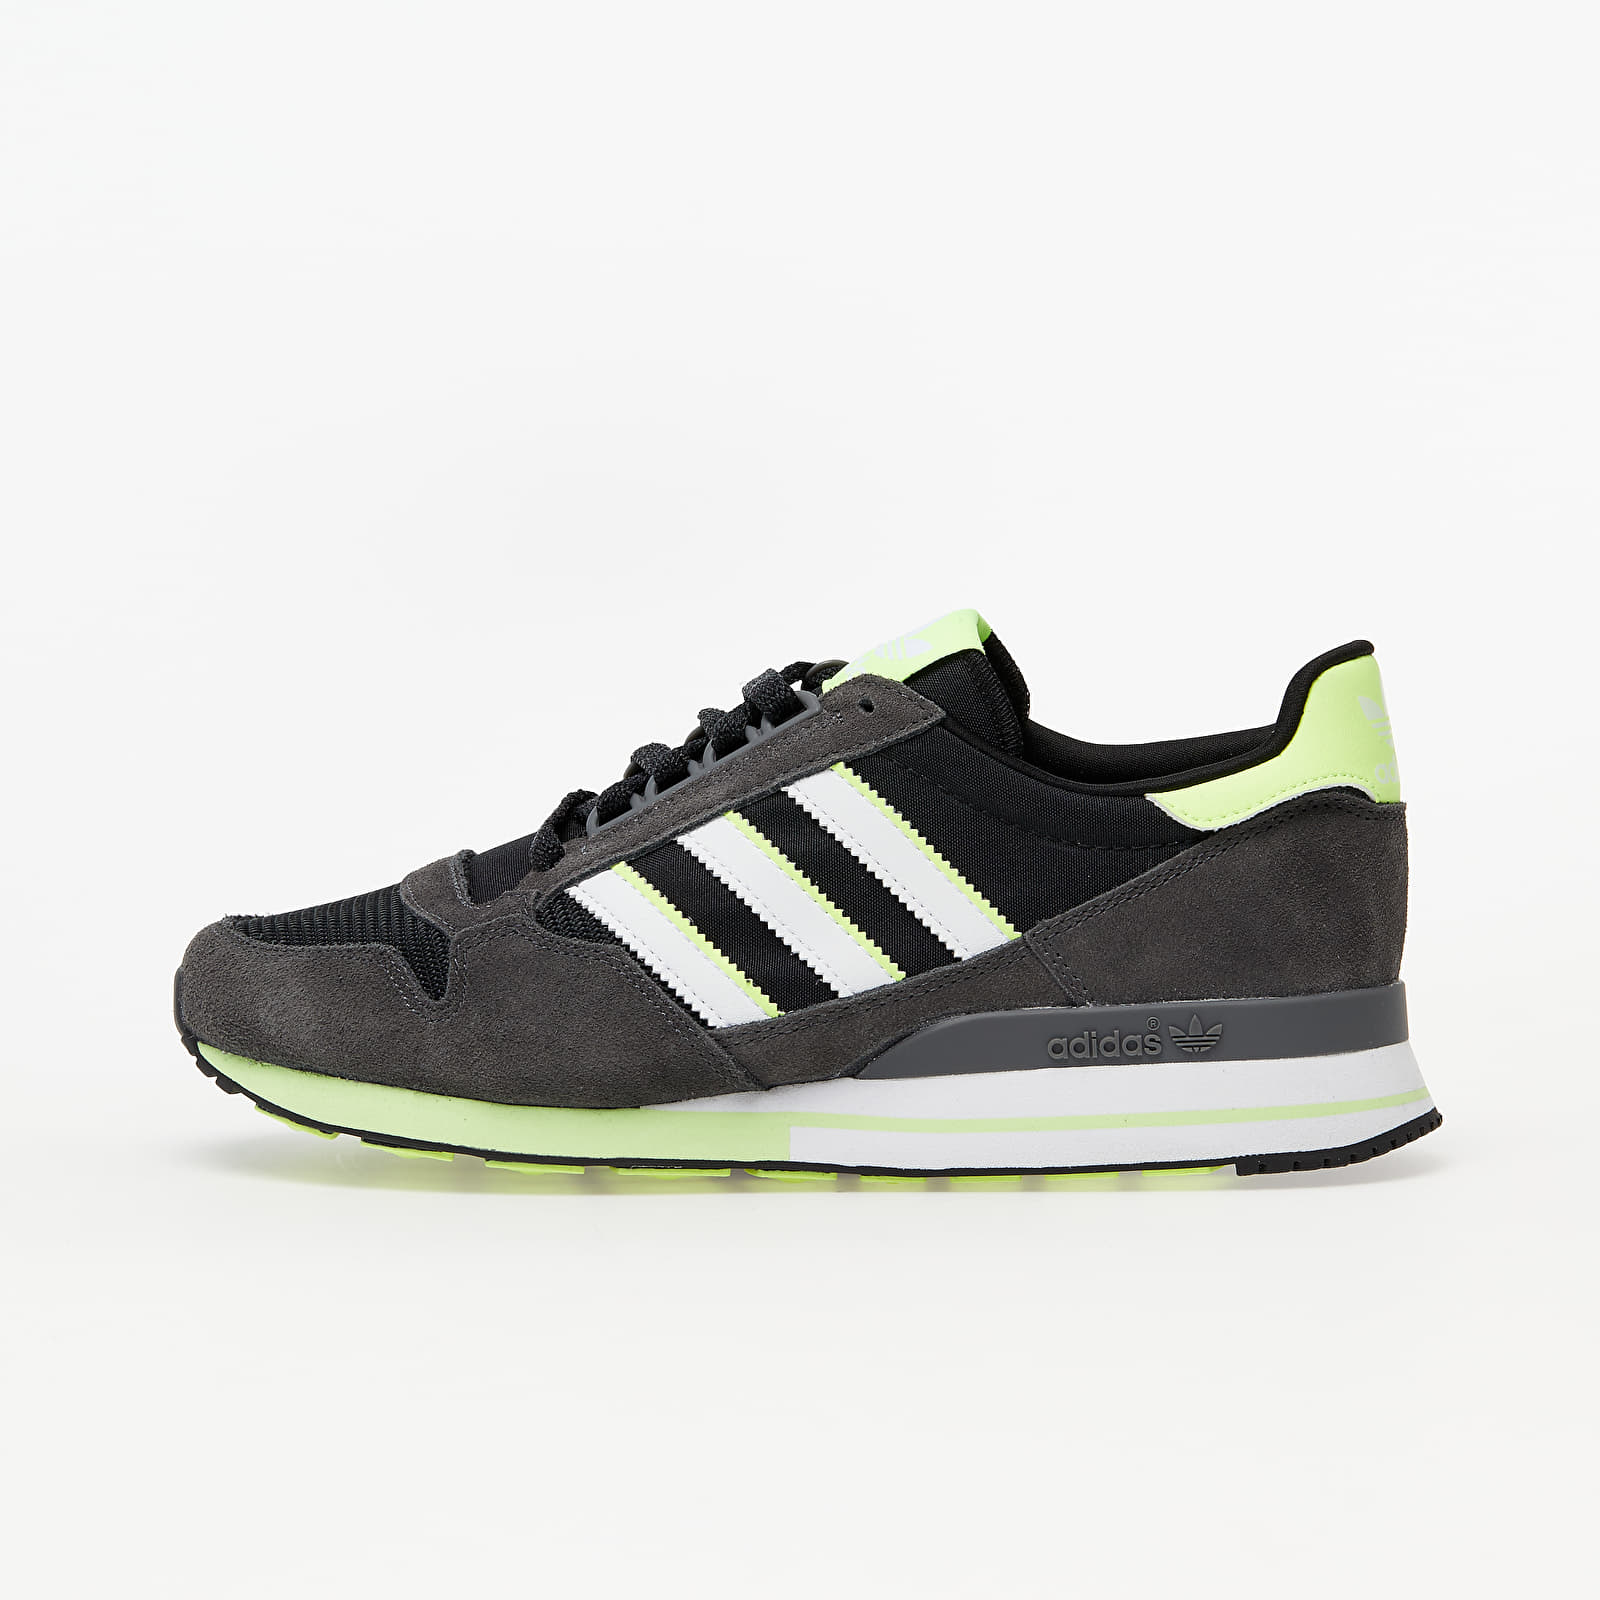 adidas ZX 500 W Grey Six/ Ftw White/ Core Black FW2815